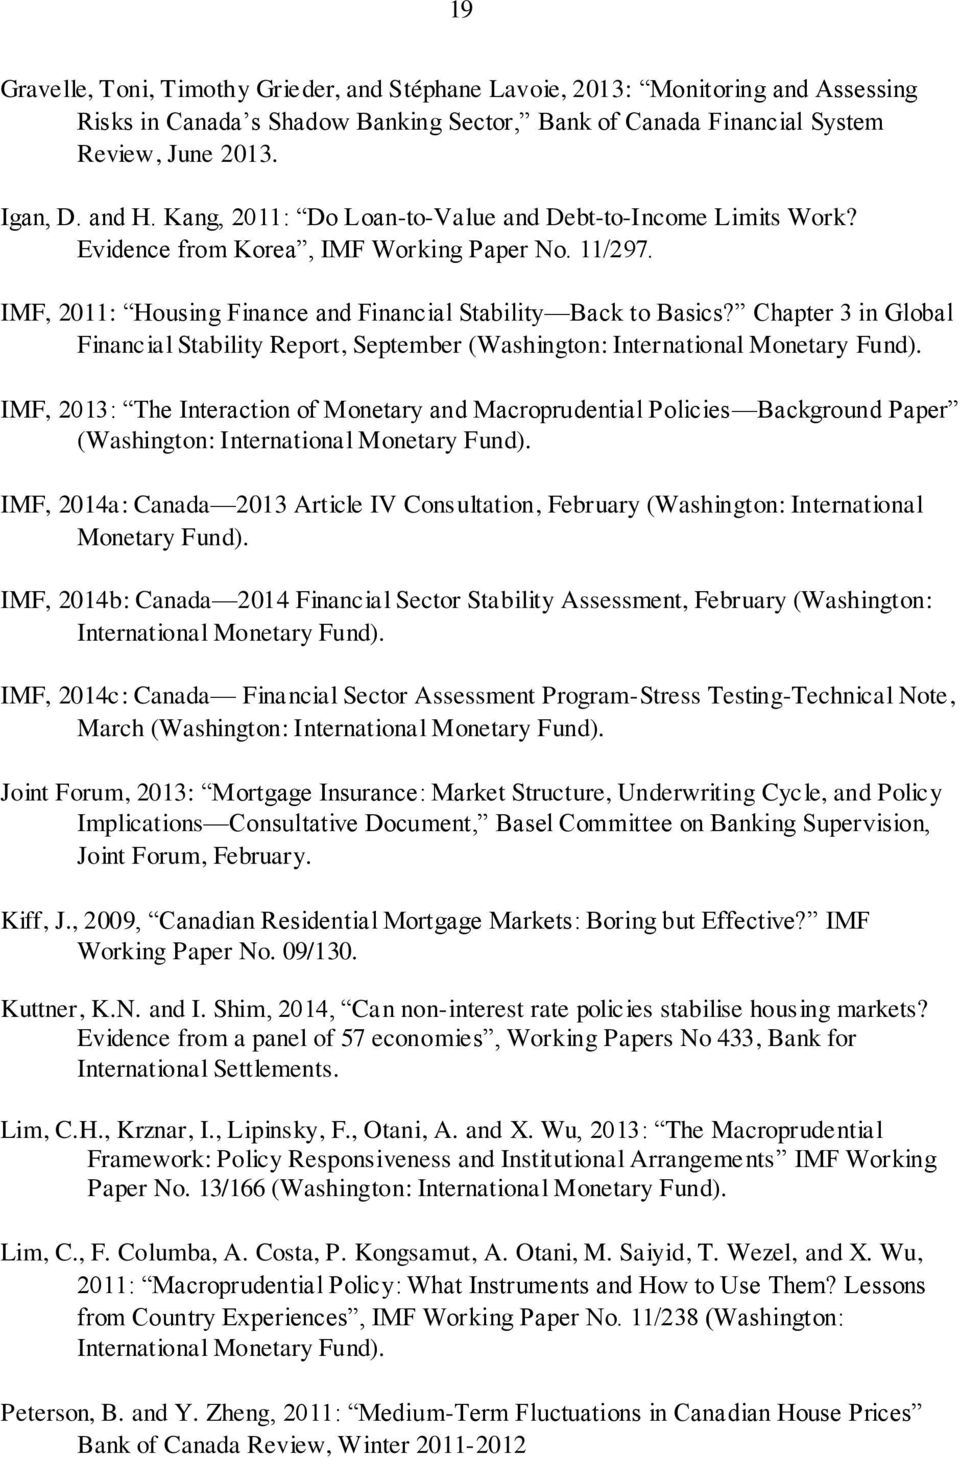 Chapter 3 in Global Financial Stability Report, September (Washington: International Monetary Fund).